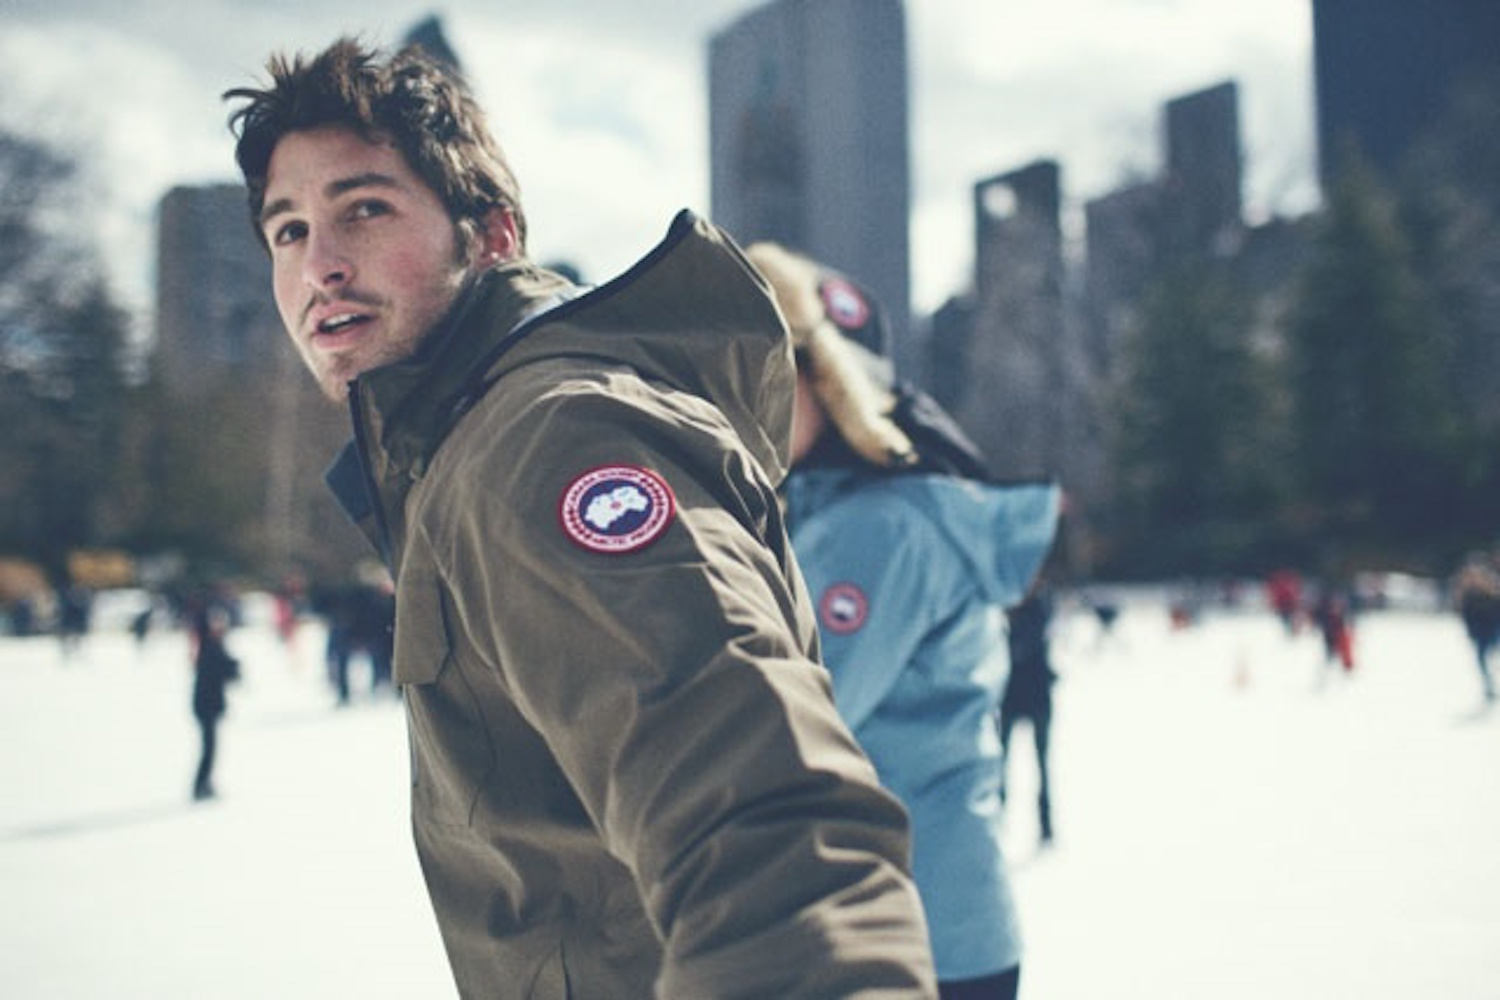 another chance cheap prices cozy fresh Parka Canada Goose, surestimée ? Notre avis | BONNEGUEULE